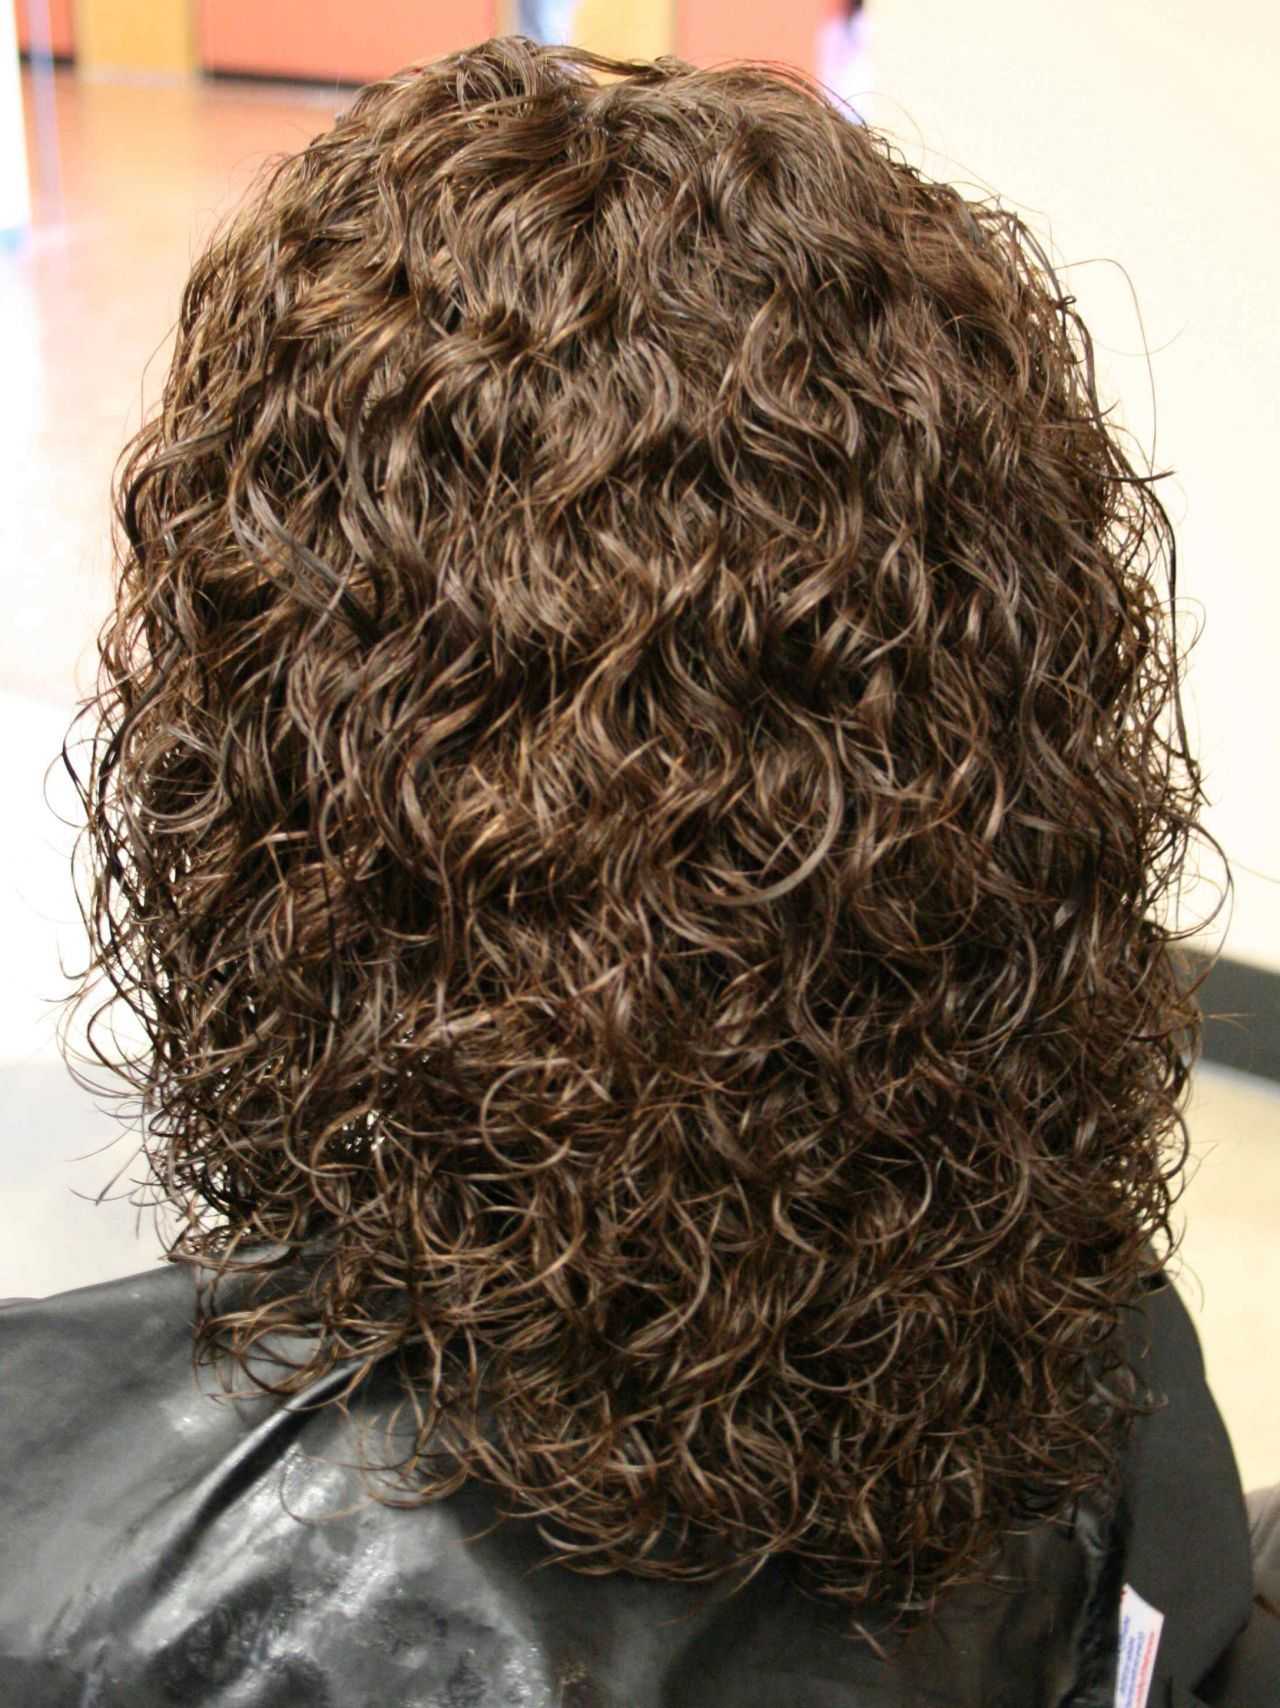 Straight perm for mixed hair - Perms For Medium Length Hair Spiral Perm Hairstyles On Medium Length Hair Pictures Gallery Example